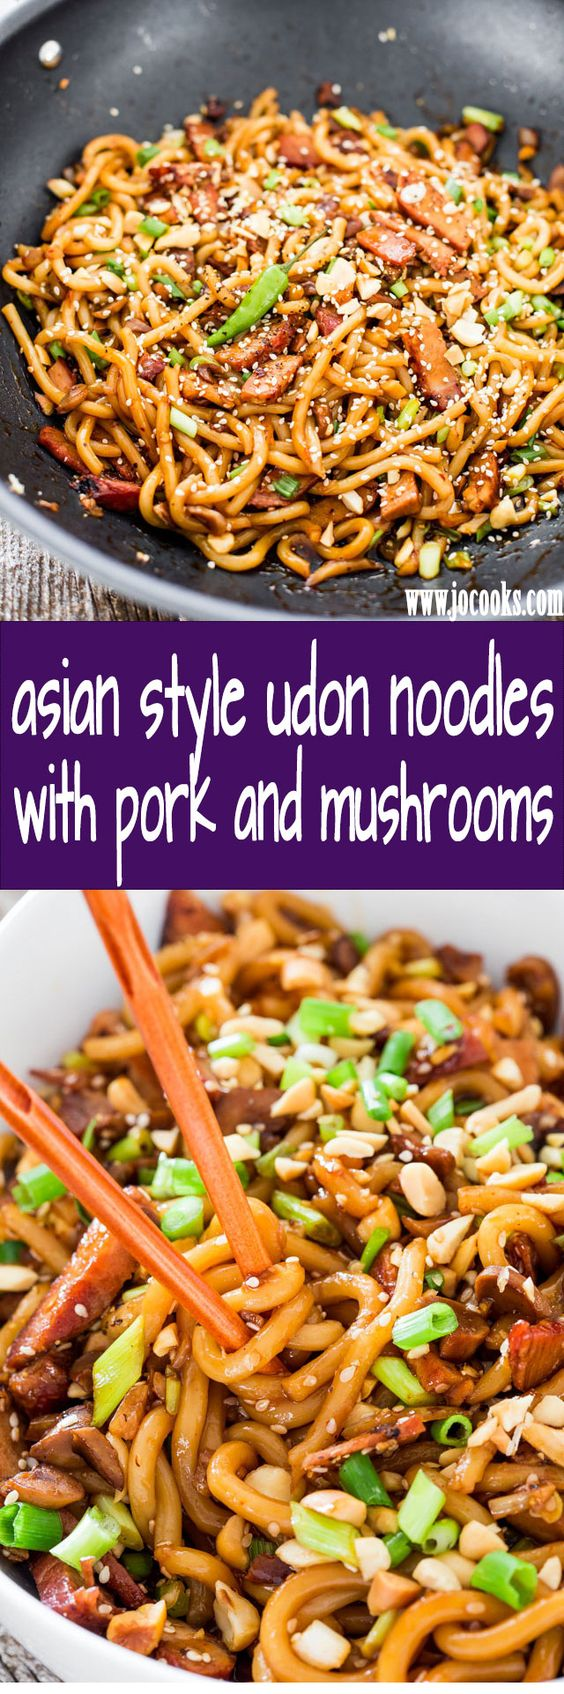 Style Udon Noodles with Pork and Mushrooms | Recipe | Udon Noodles ...